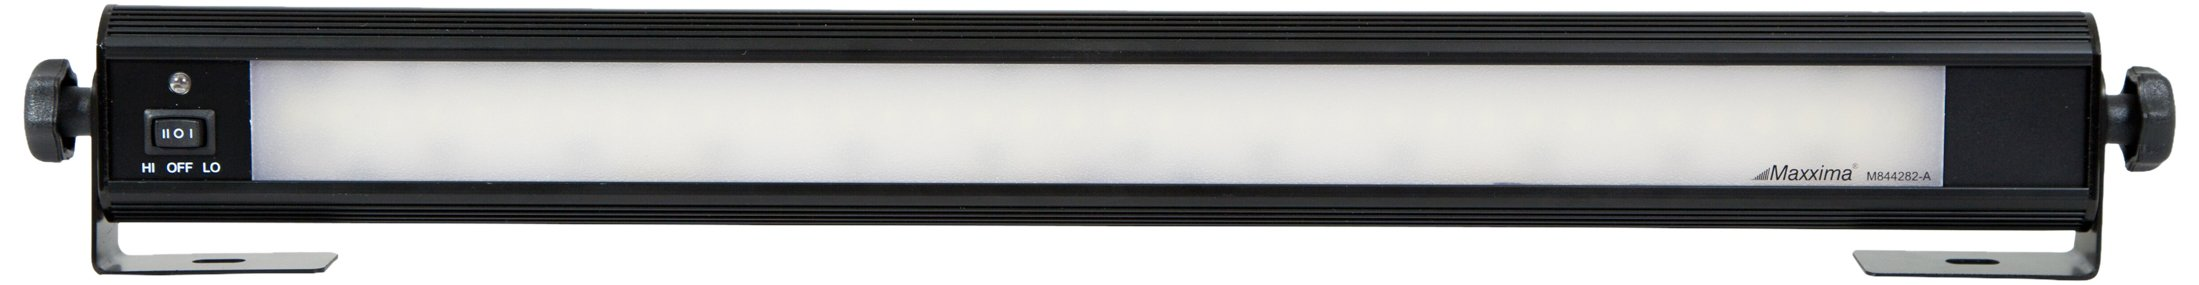 Maxxima M844282-A 36 LED 19.5'' Cargo Light with Illuminated On/Off Switch 550 Lumens by Maxxima